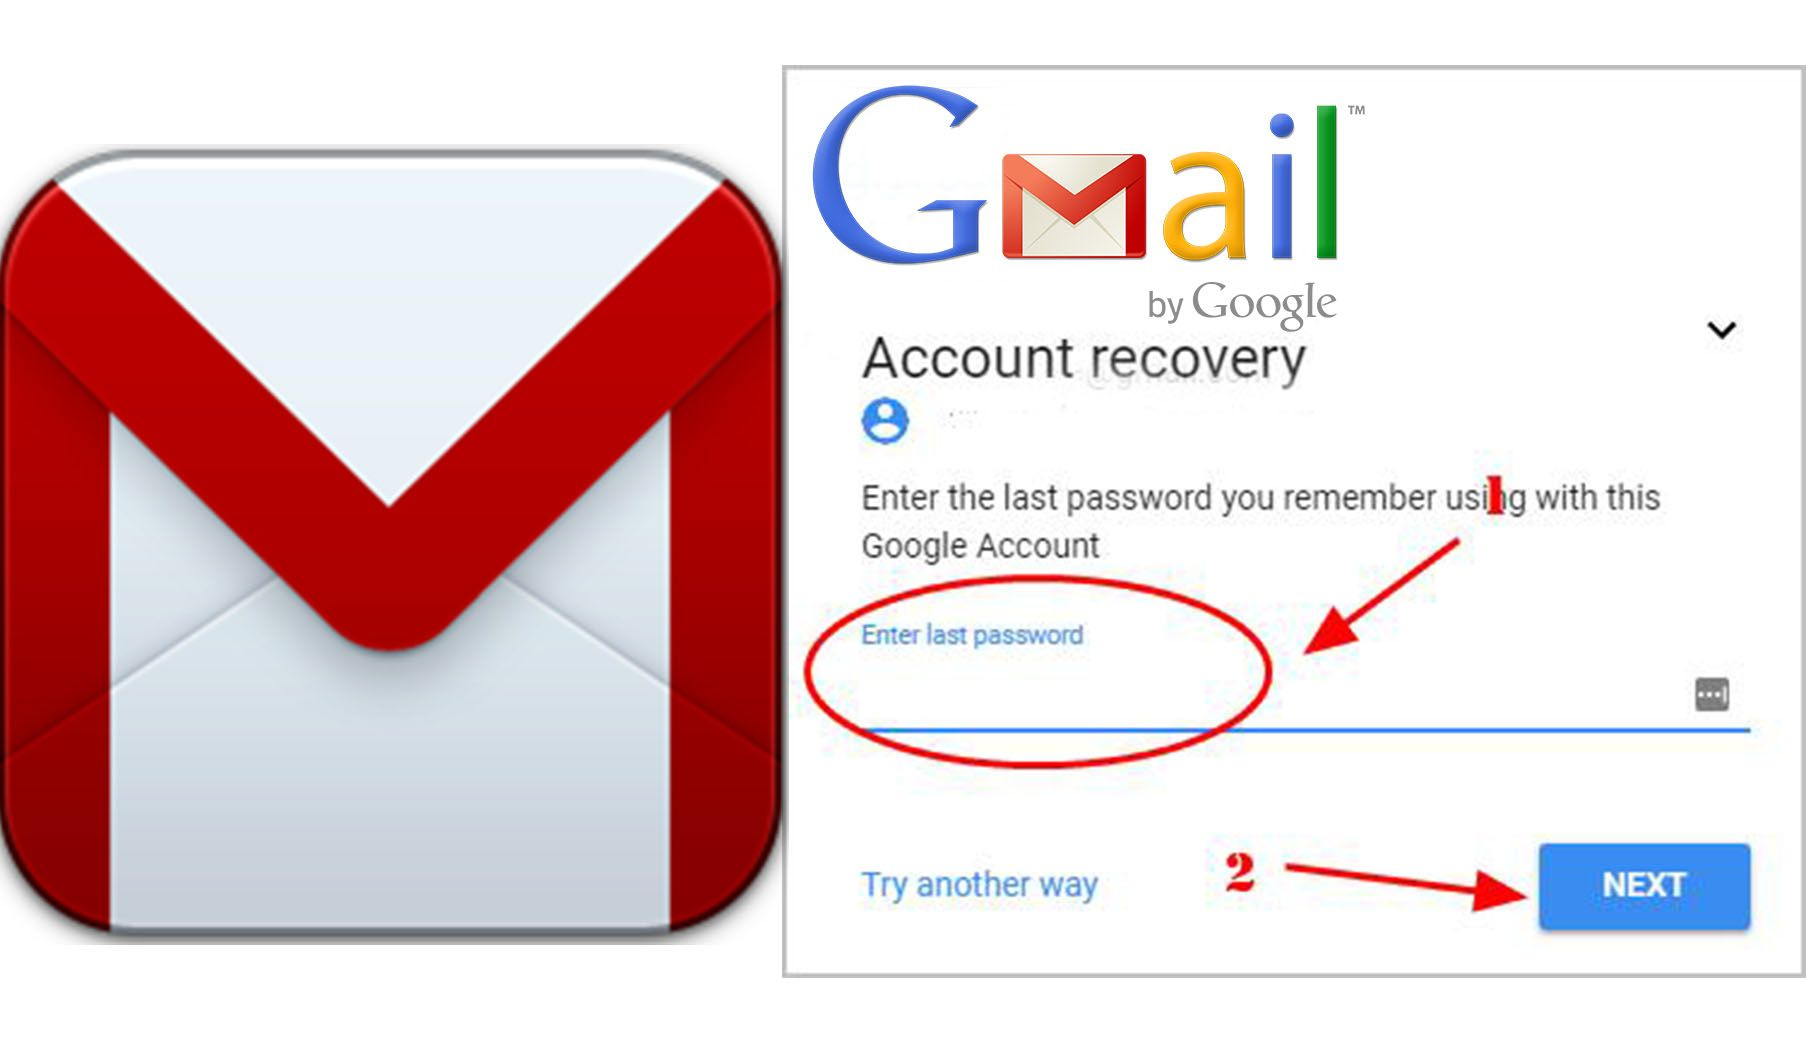 To Recover Your Gmail Account It Either You Recover Your Password Or Your Email Address The Gmail Account Recovery Pro Account Recovery Accounting Recovery